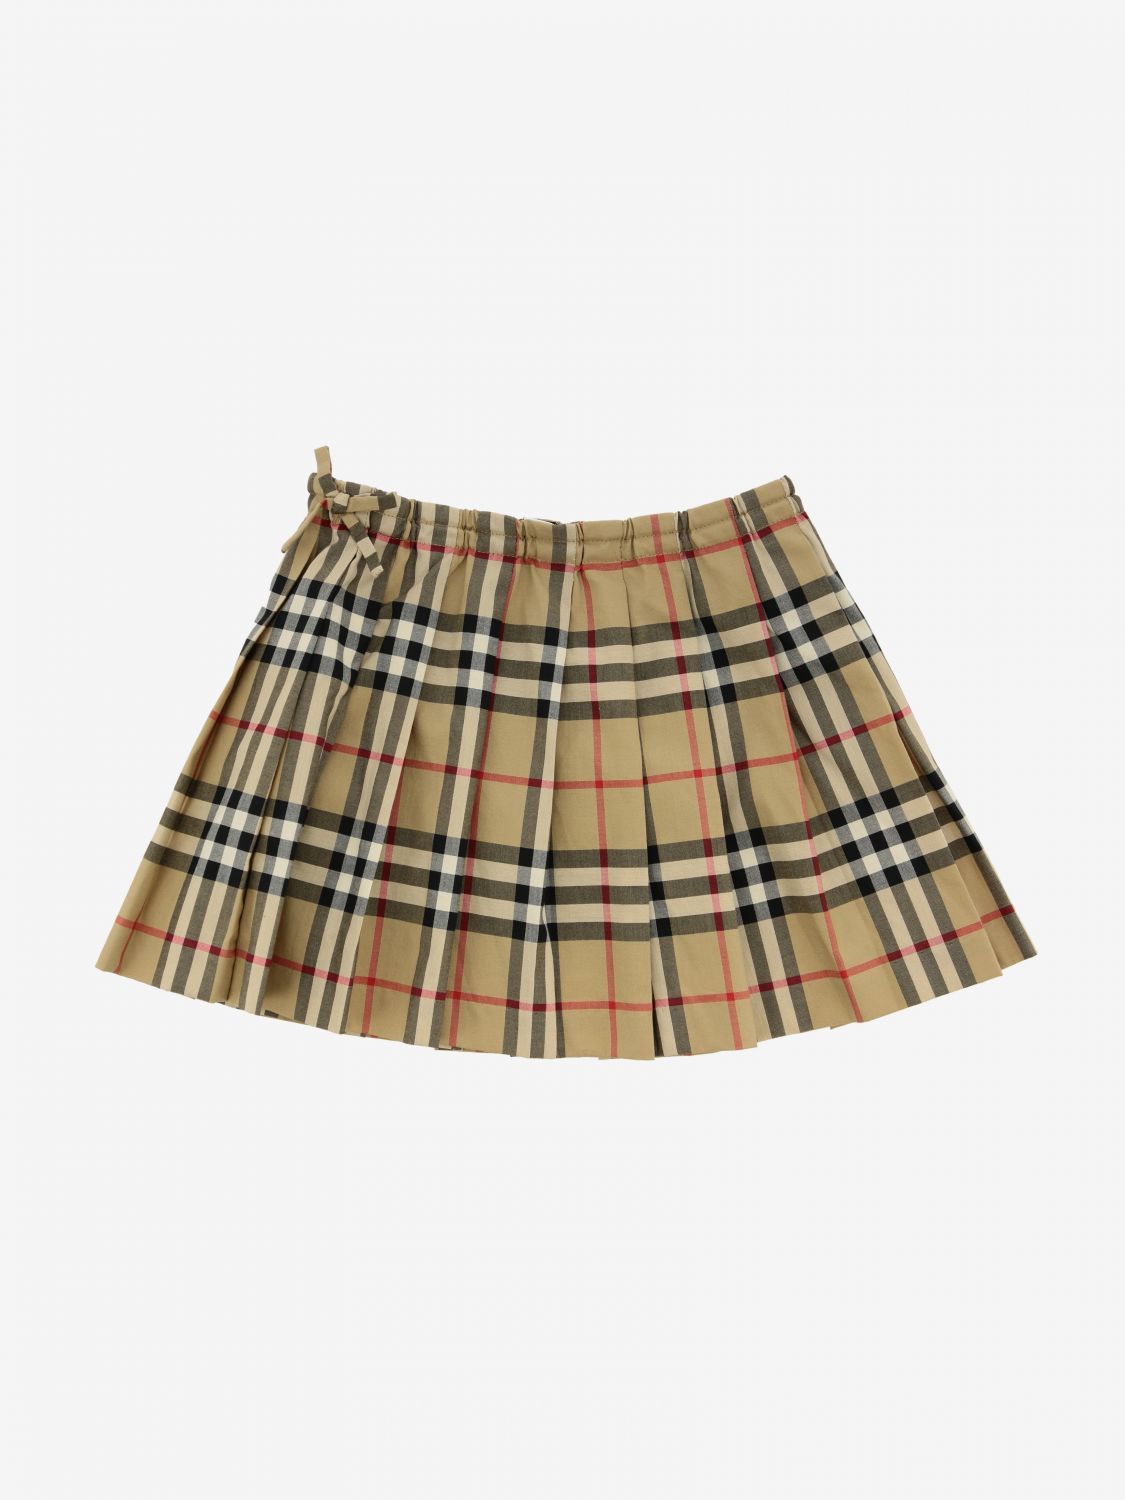 Burberry Infant check skirt beige 2